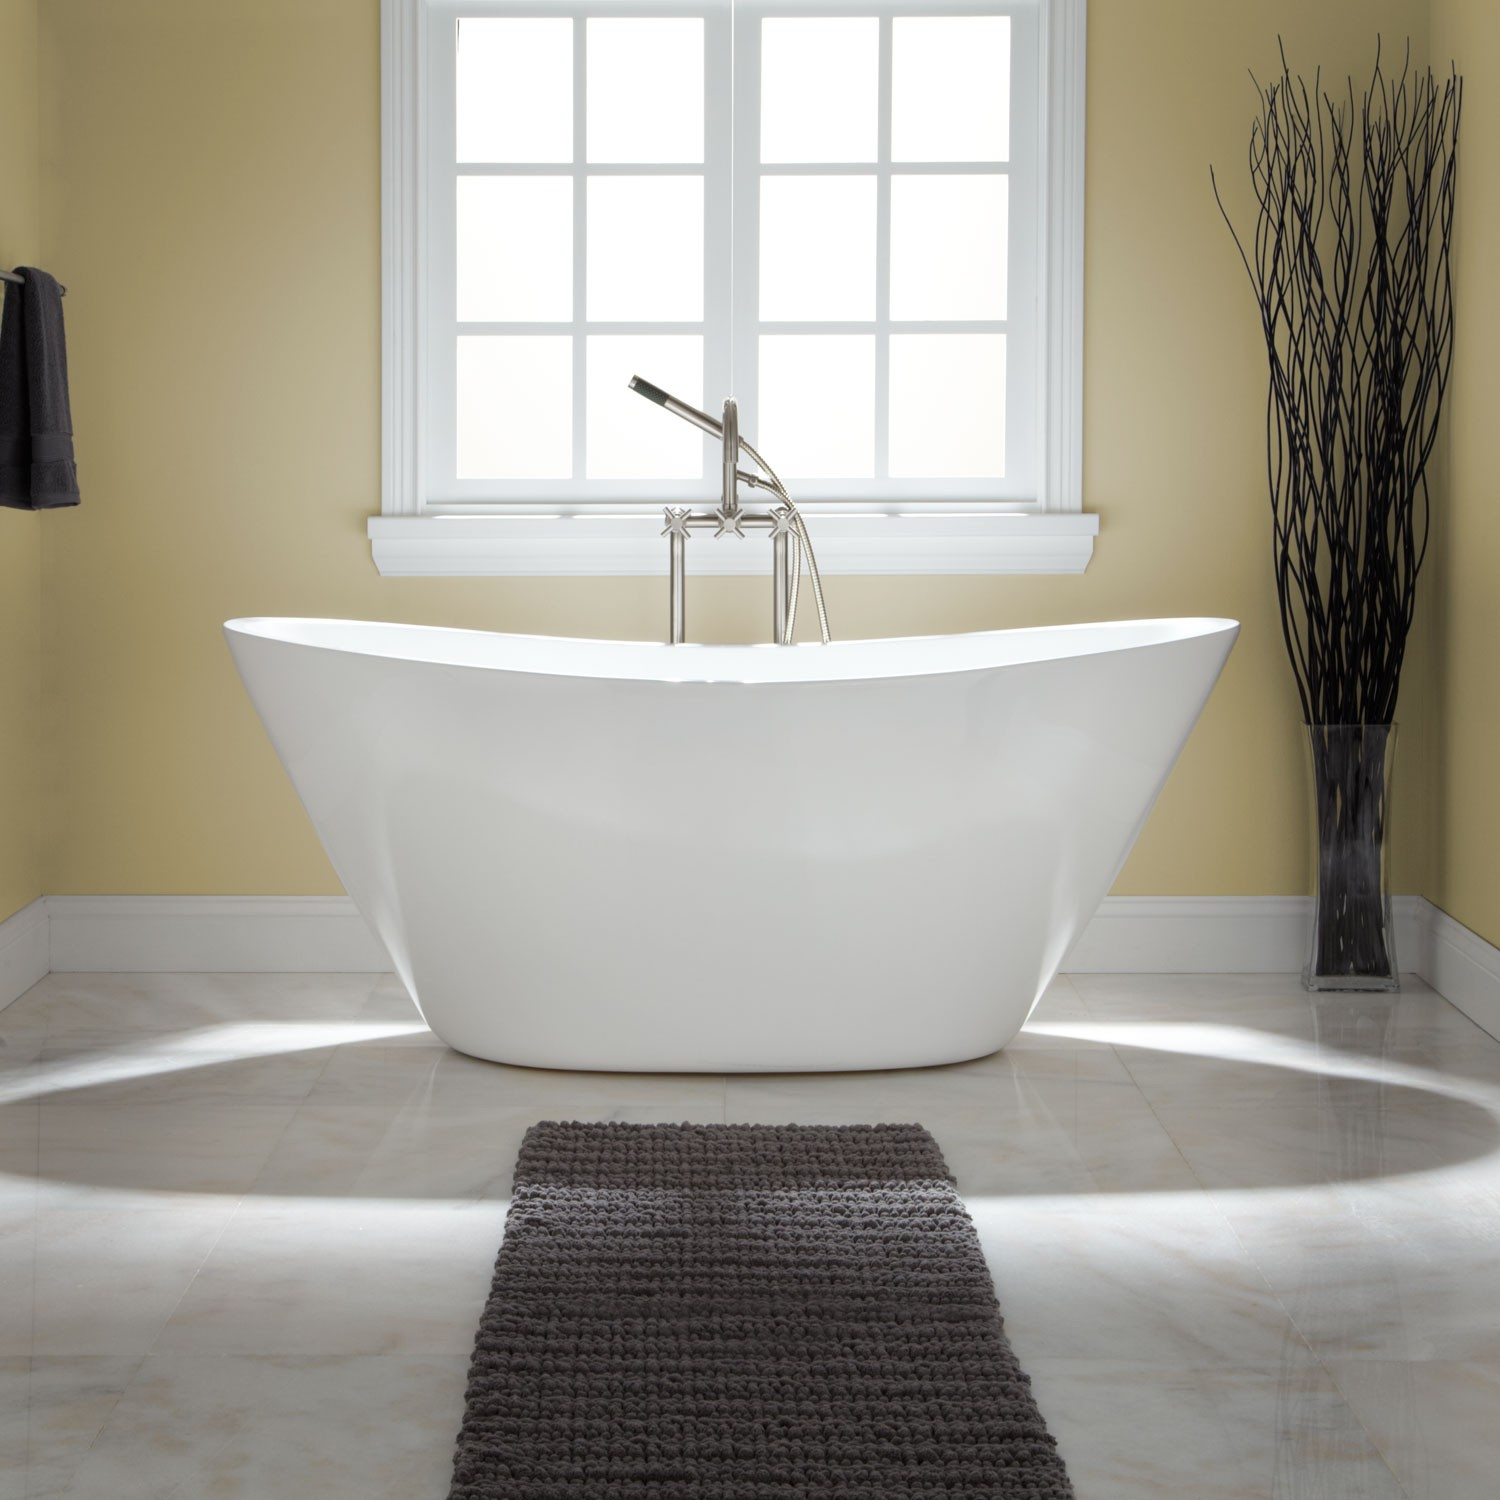 freestanding soaking tub for two. minimalist tub for two with stainless steel water sprayer dark grey wool  mat bathroom Create A Romantic Scenery by Enjoying Bath Session on Soaking Tub